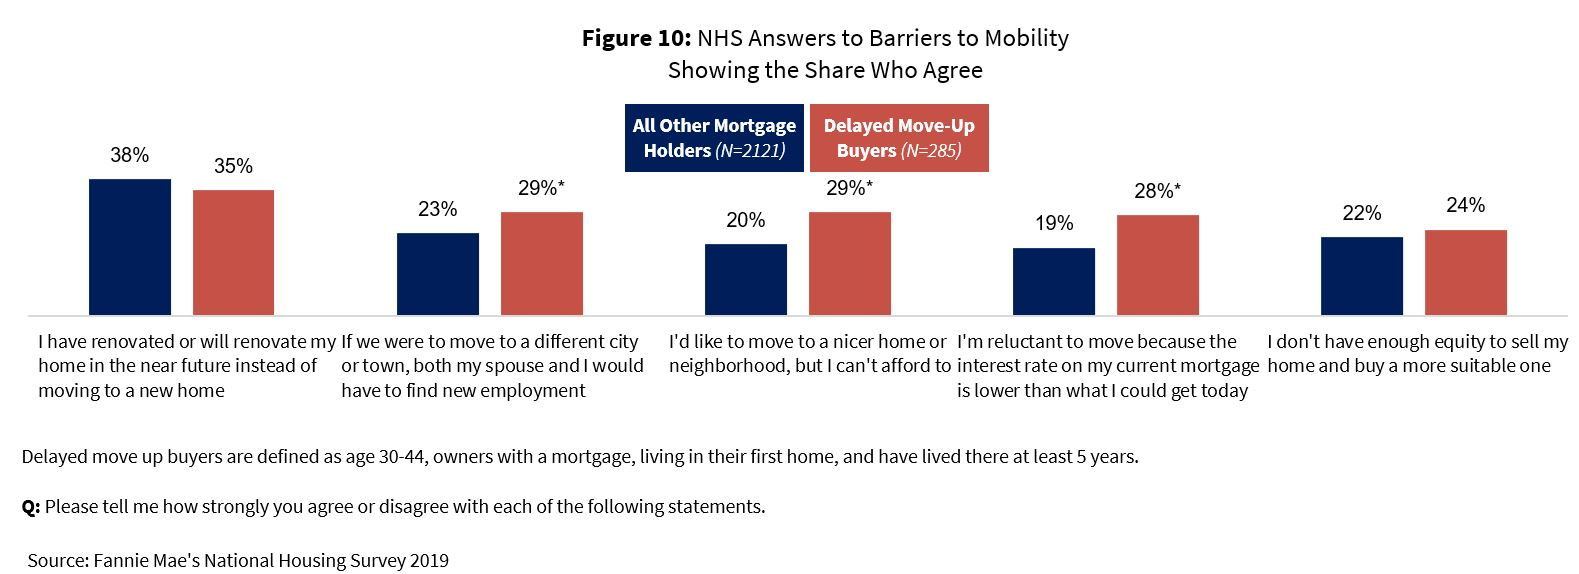 NHS Answers to Barriers to Mobility Showing the Share Who Agree